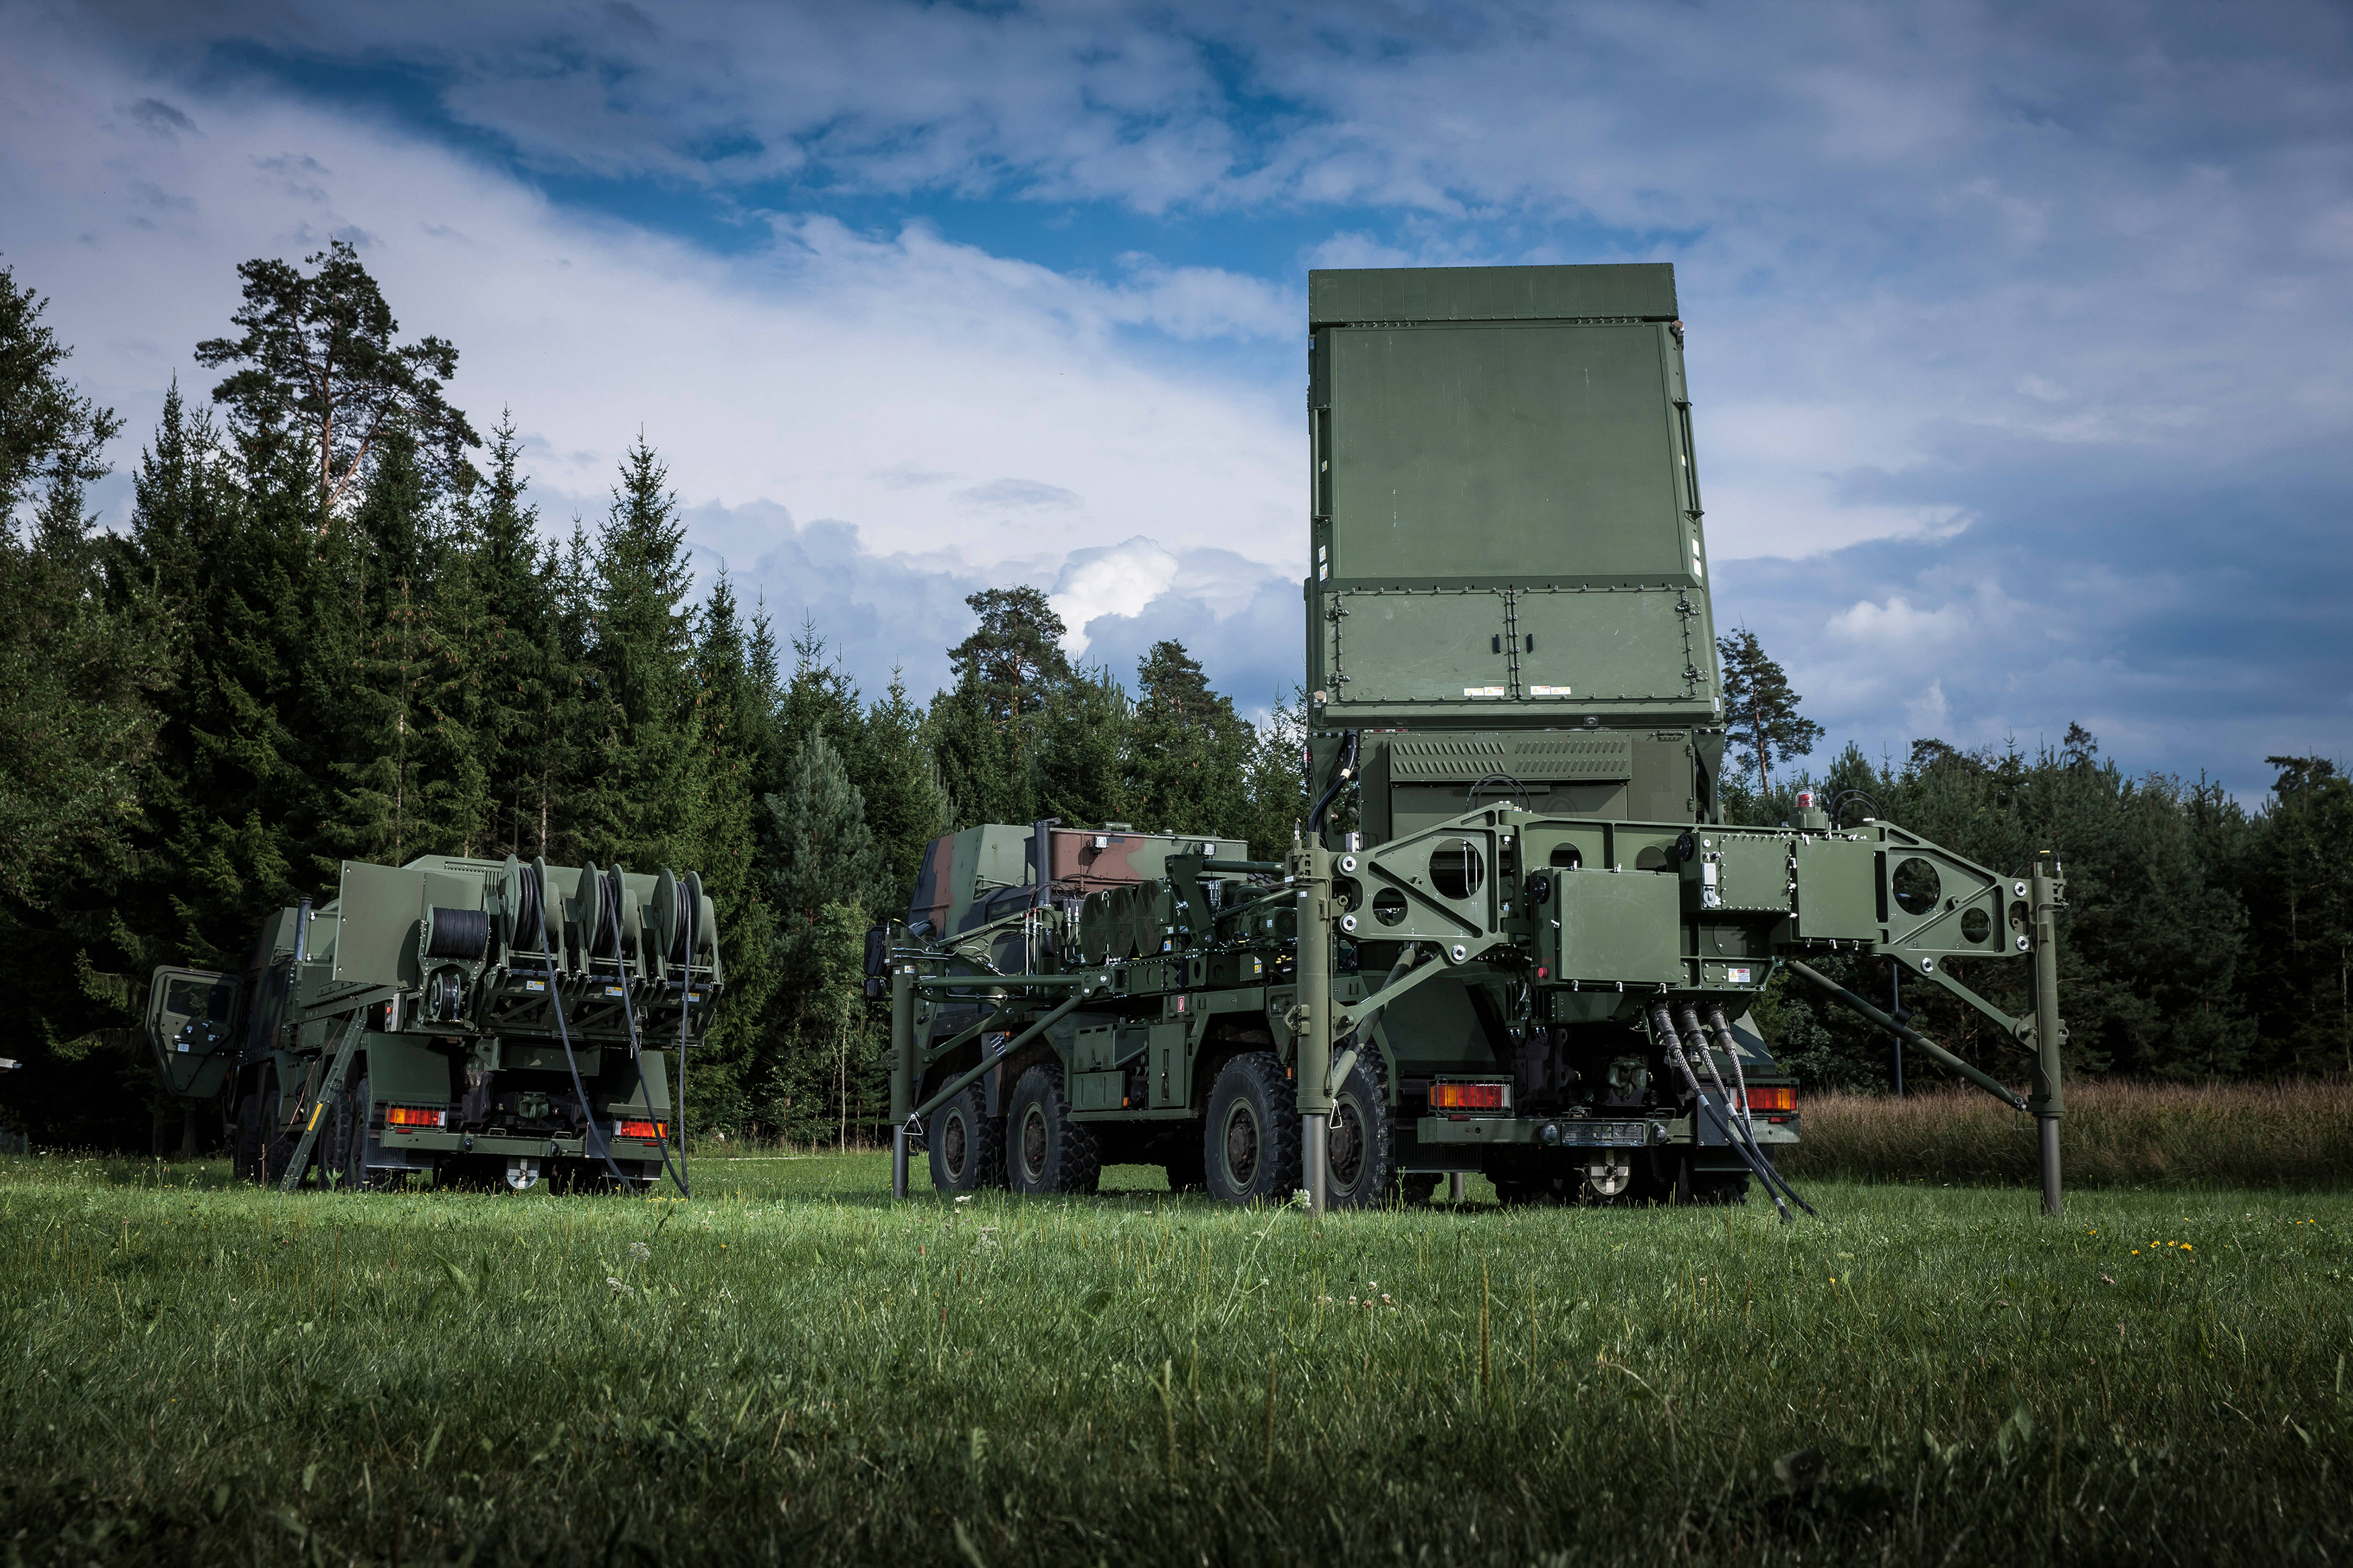 MEADS by MBDA Multifunction Fire Control Radar with Ancillary Power Generator